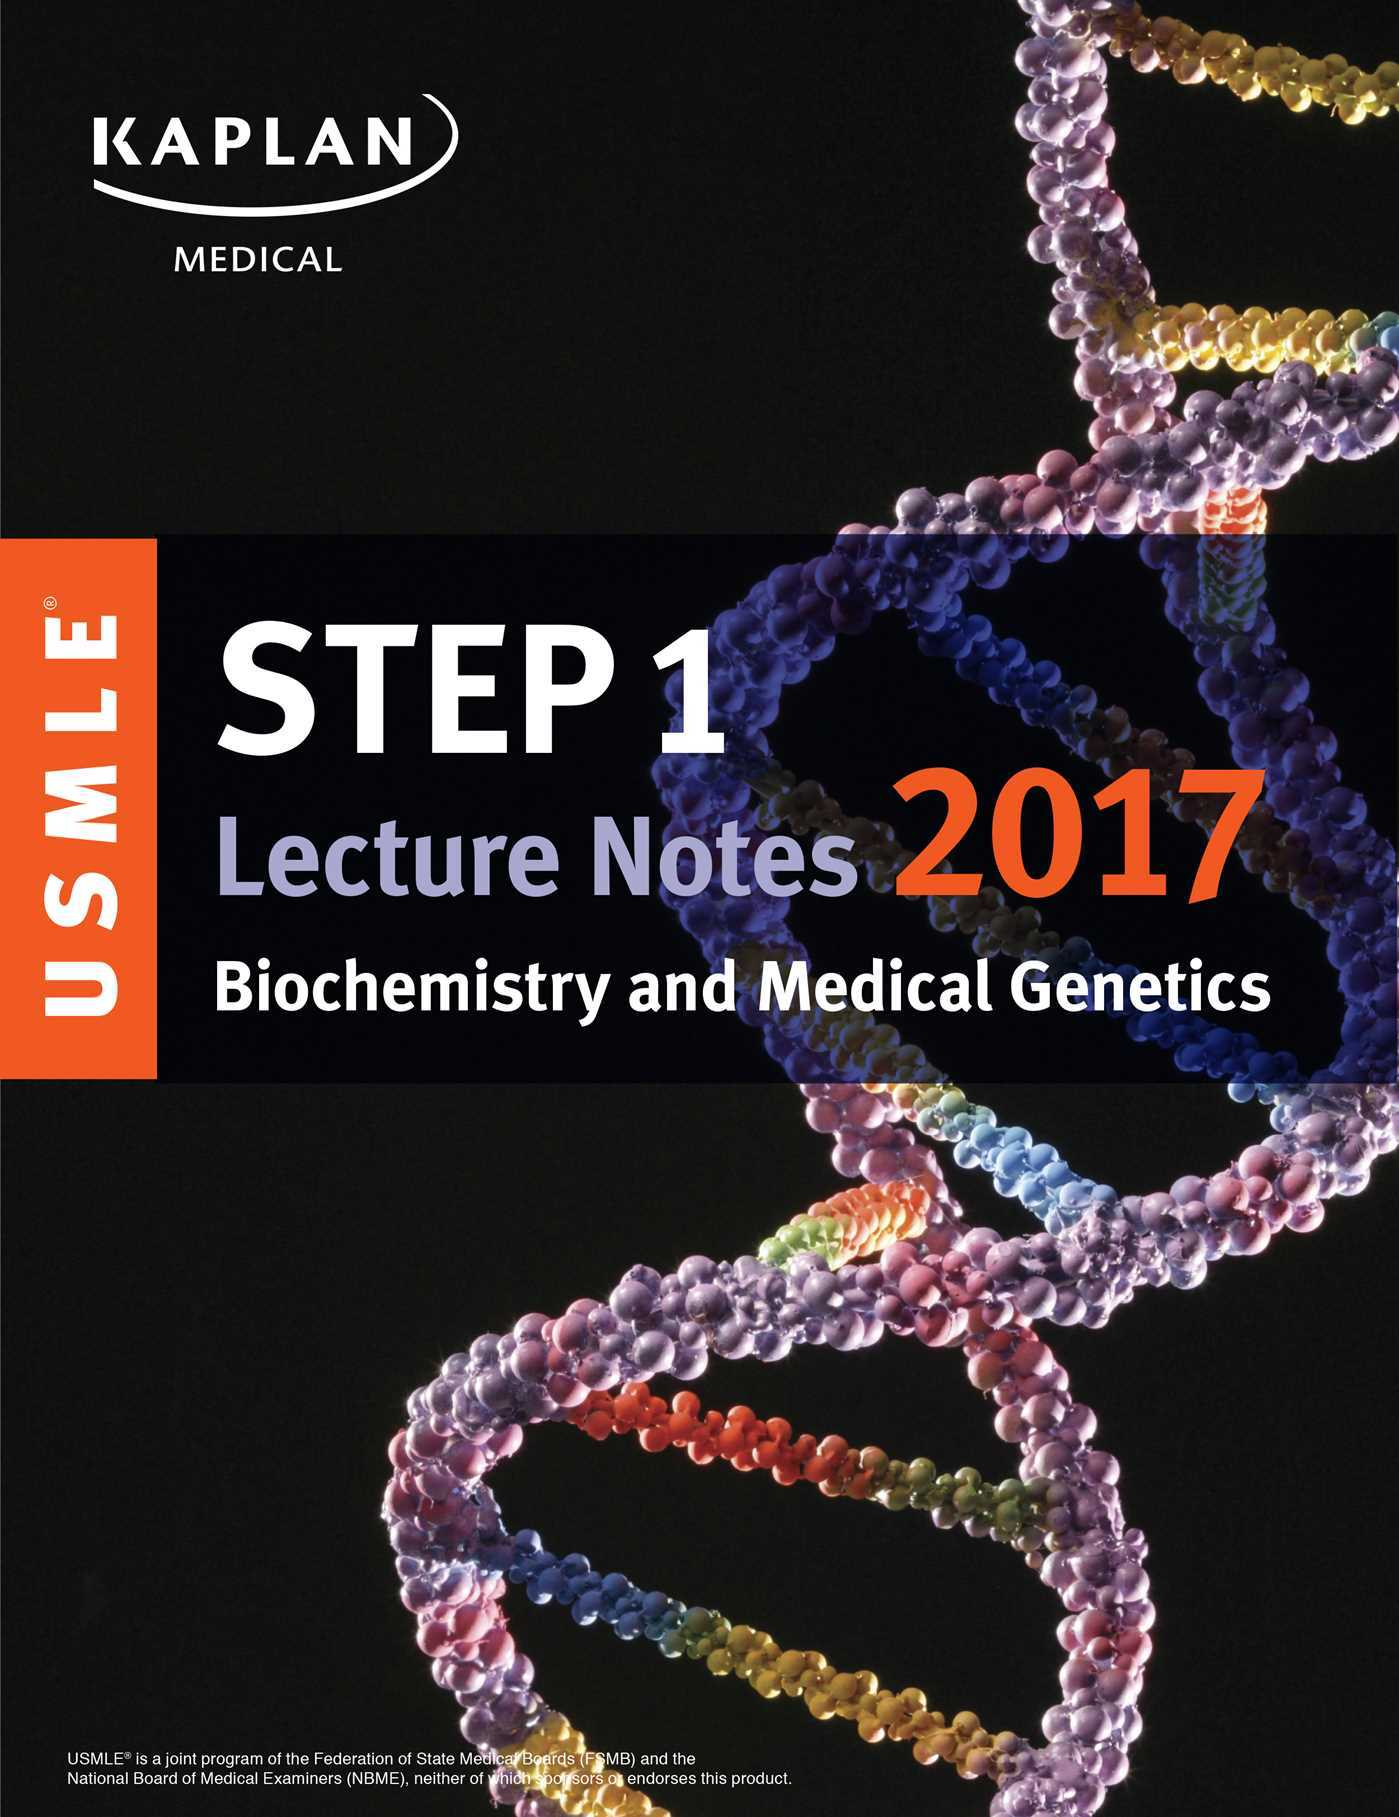 USMLE Step 1 Lecture Notes 2017: Biochemistry and Medical